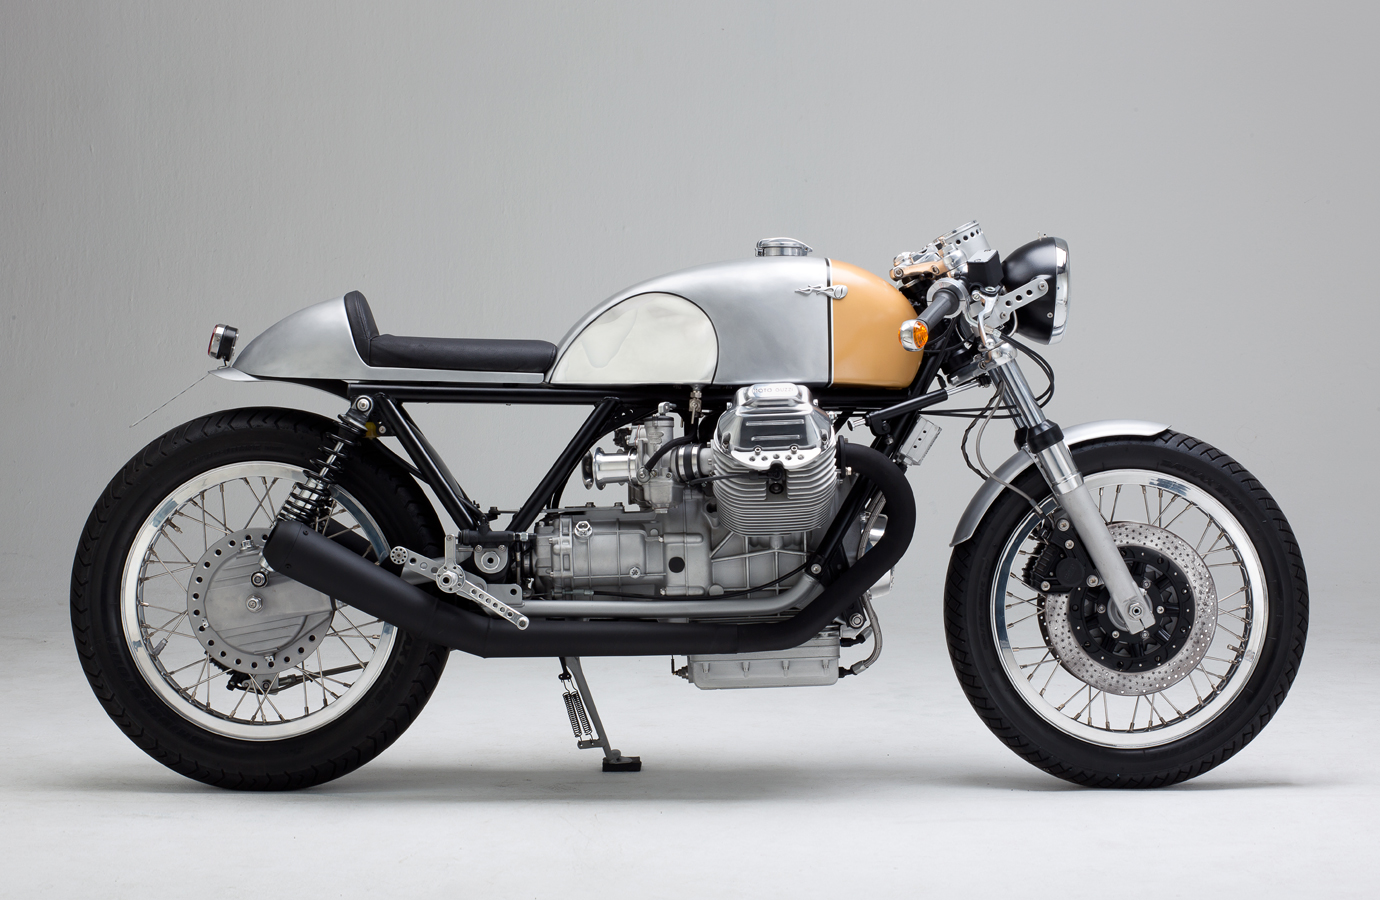 racing caf moto guzzi le mans iii maschine 7 by kaffeemaschine. Black Bedroom Furniture Sets. Home Design Ideas